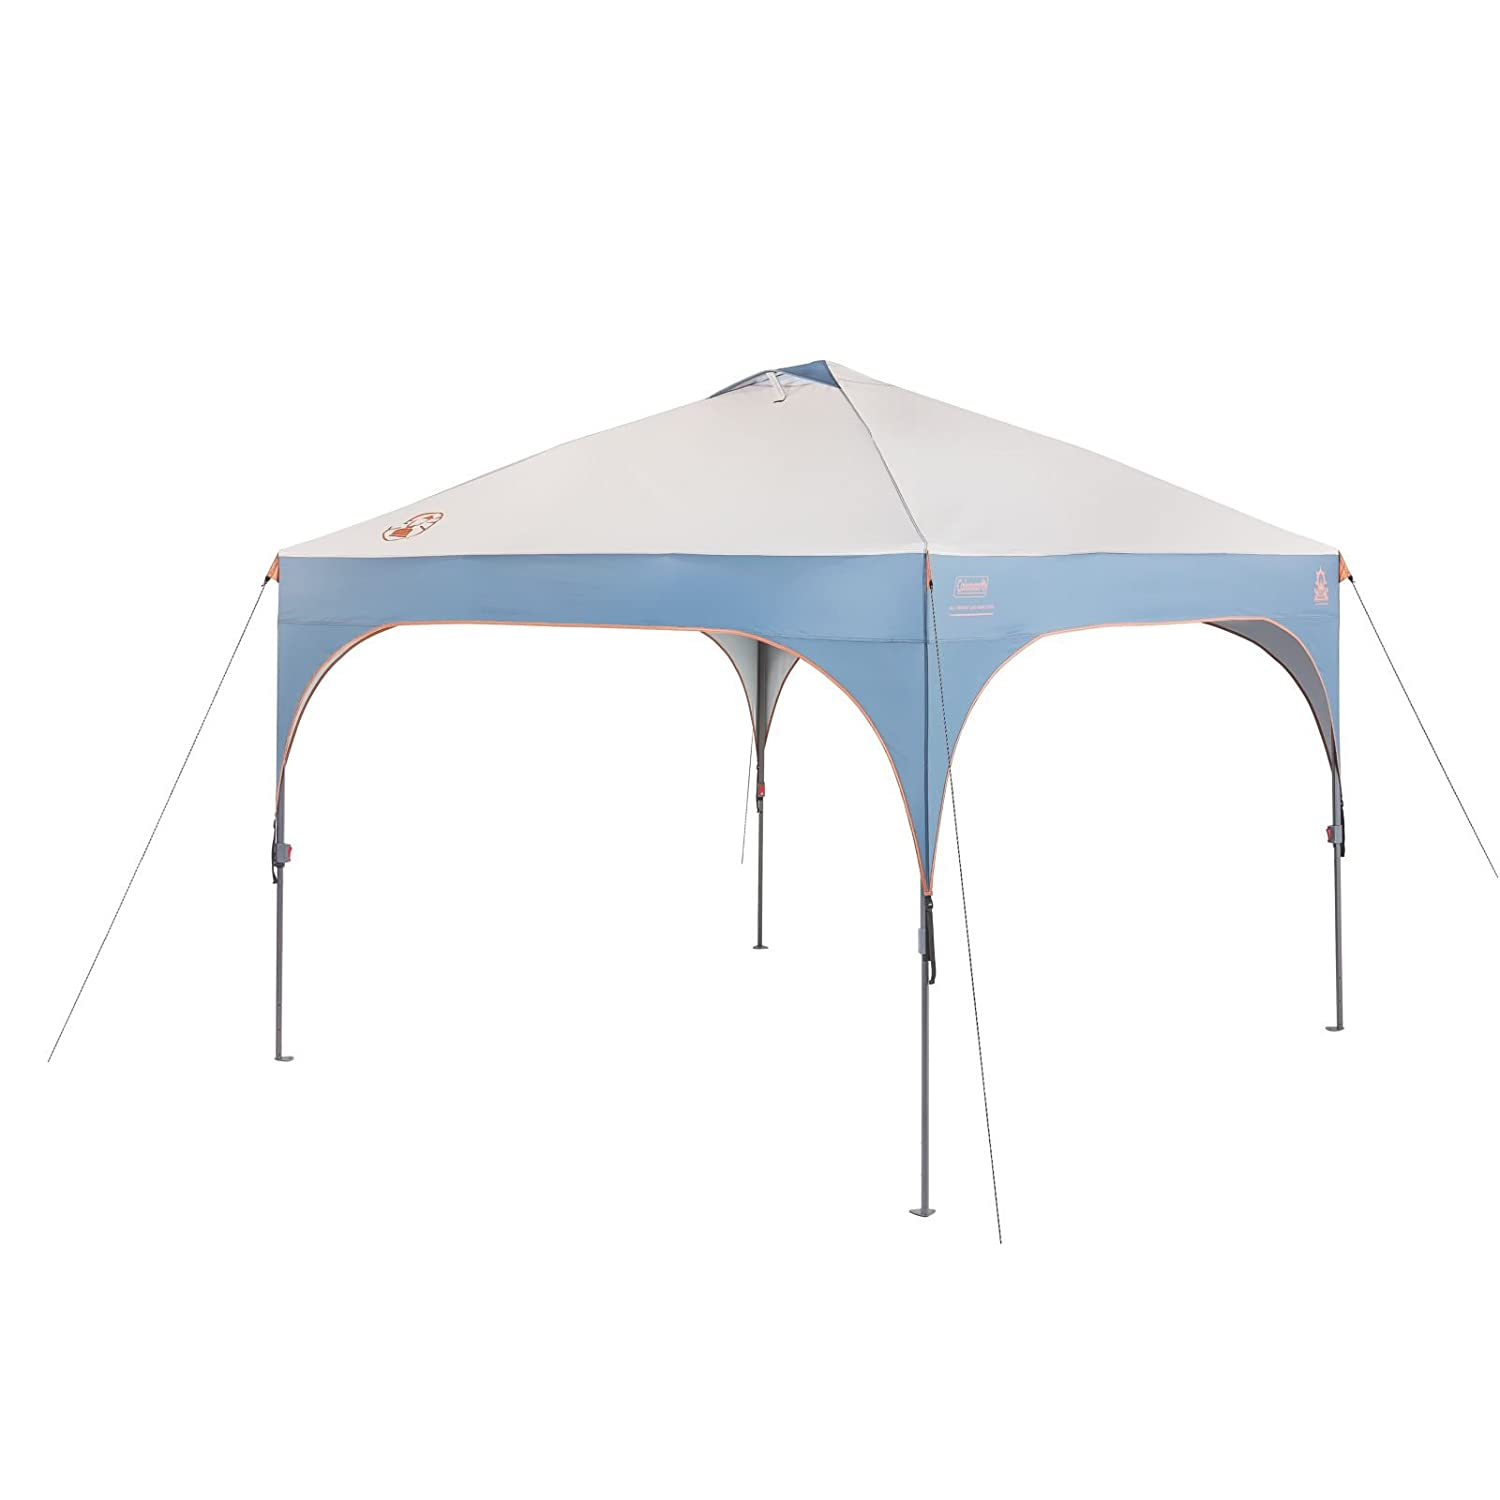 outback canopy review best sundome up coleman with system lighting pop tents australia led instant tent light person